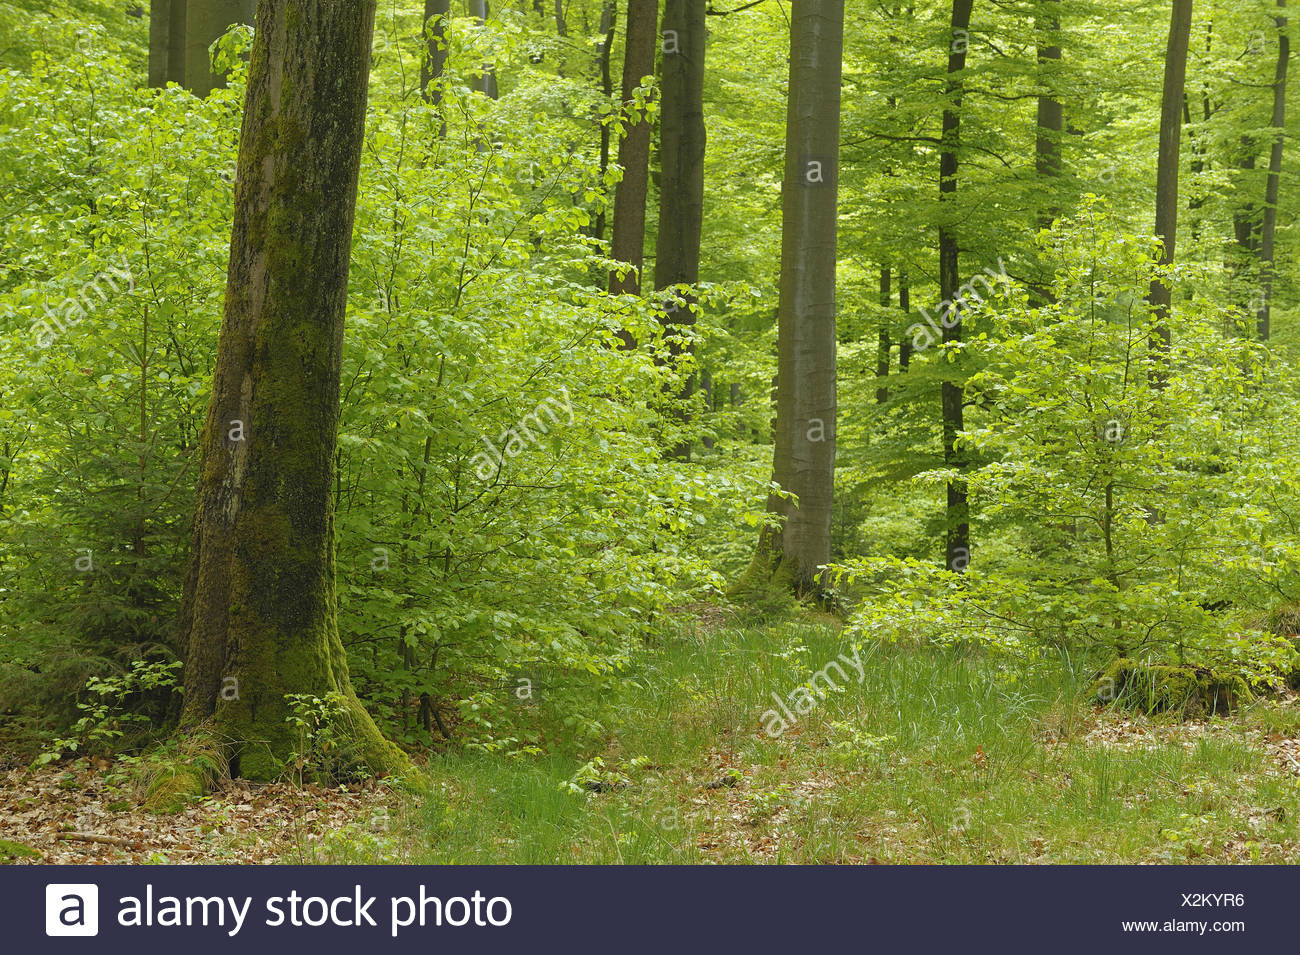 Beech forest, Germany Stock Photo